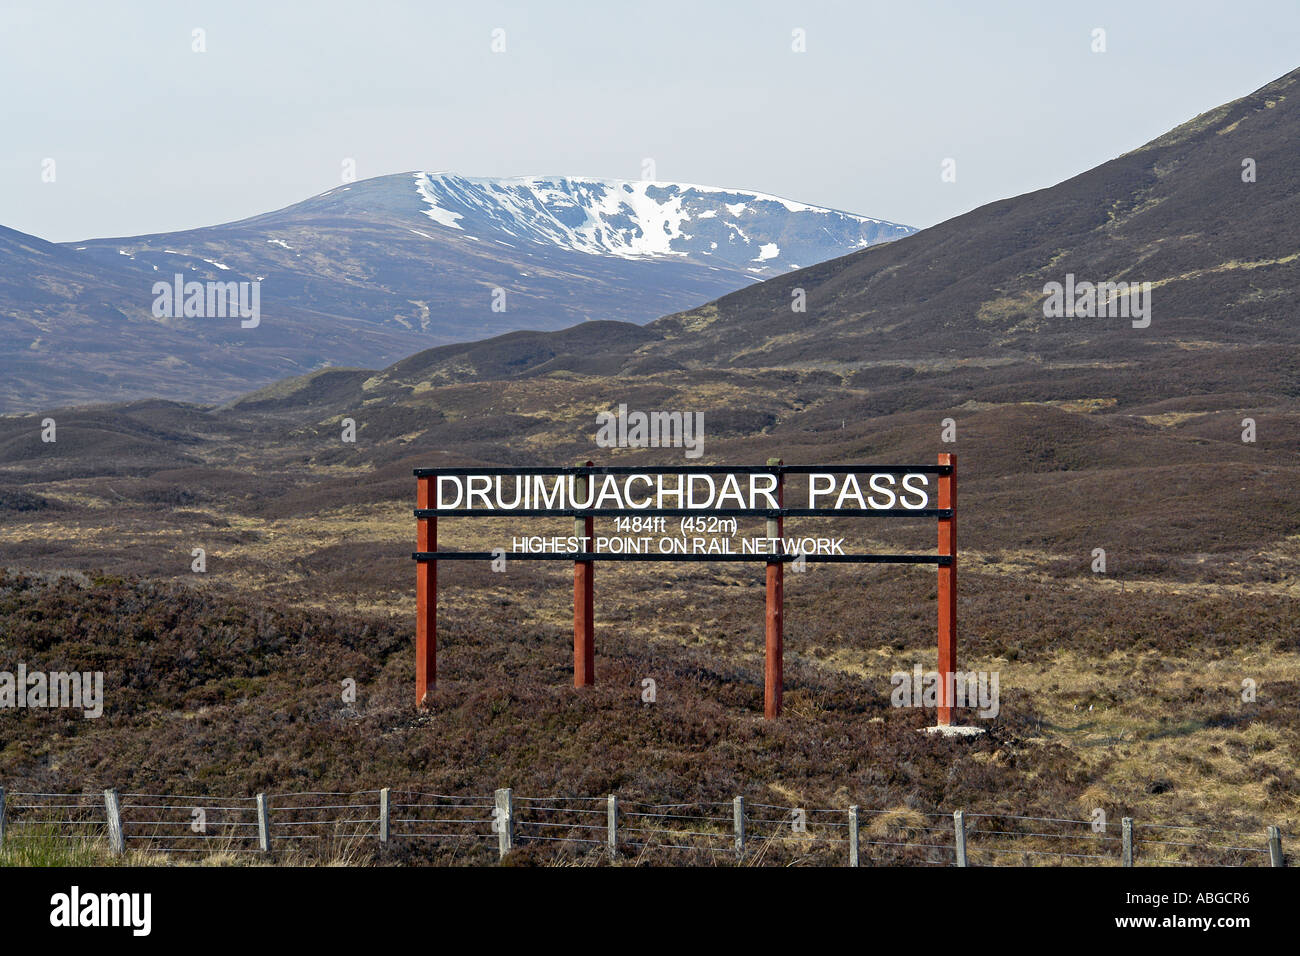 Druimuachdar Pass (or Pass of Drumochter as it is better known) sign indicating the highest point on the British Stock Photo